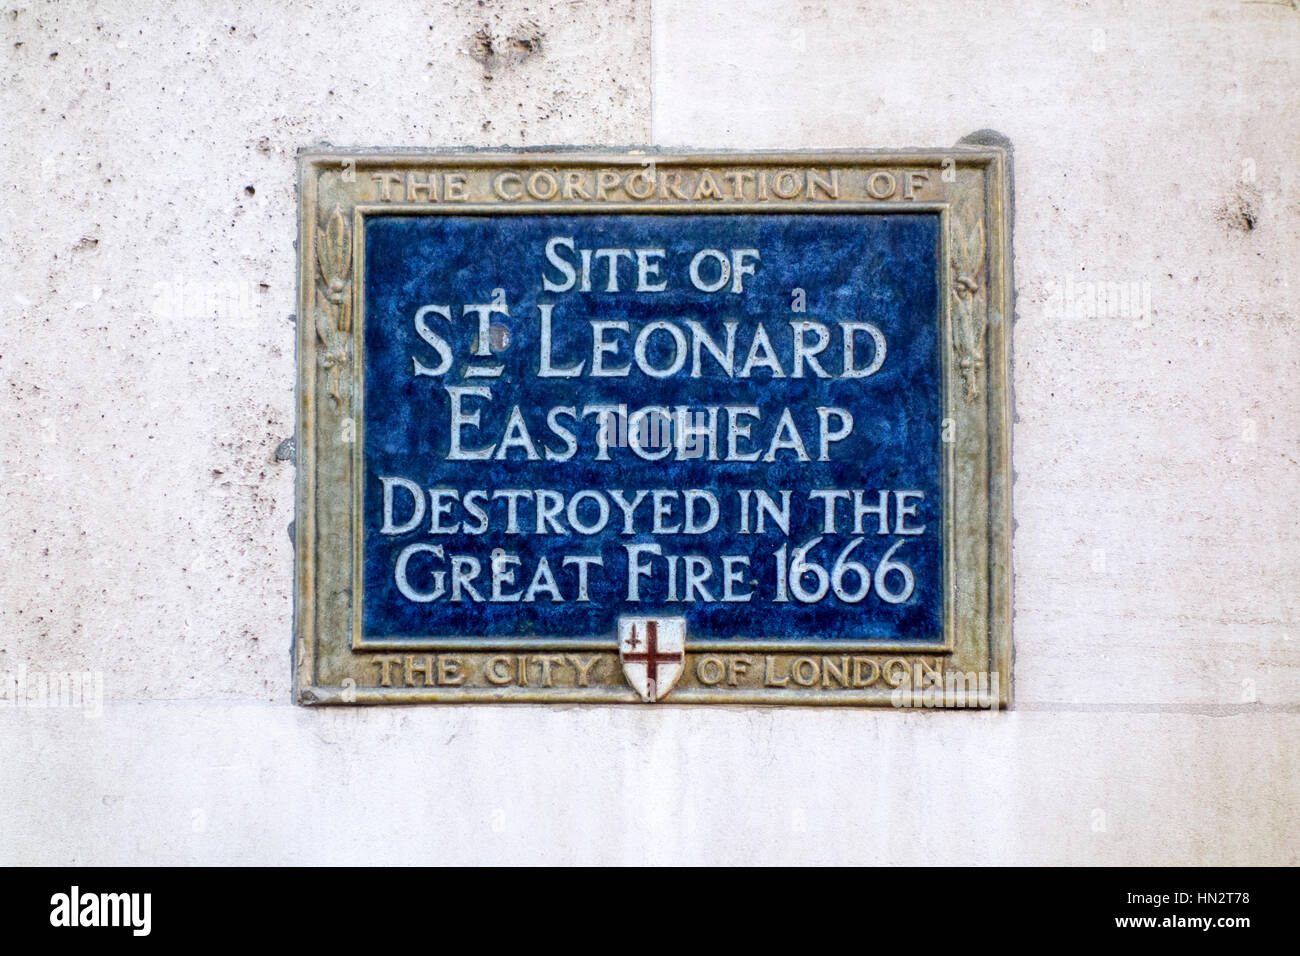 Blue Plaque showing the site of St Leonard Eastcheap, destroyed in the Great Fire of London 1666 - Stock Image